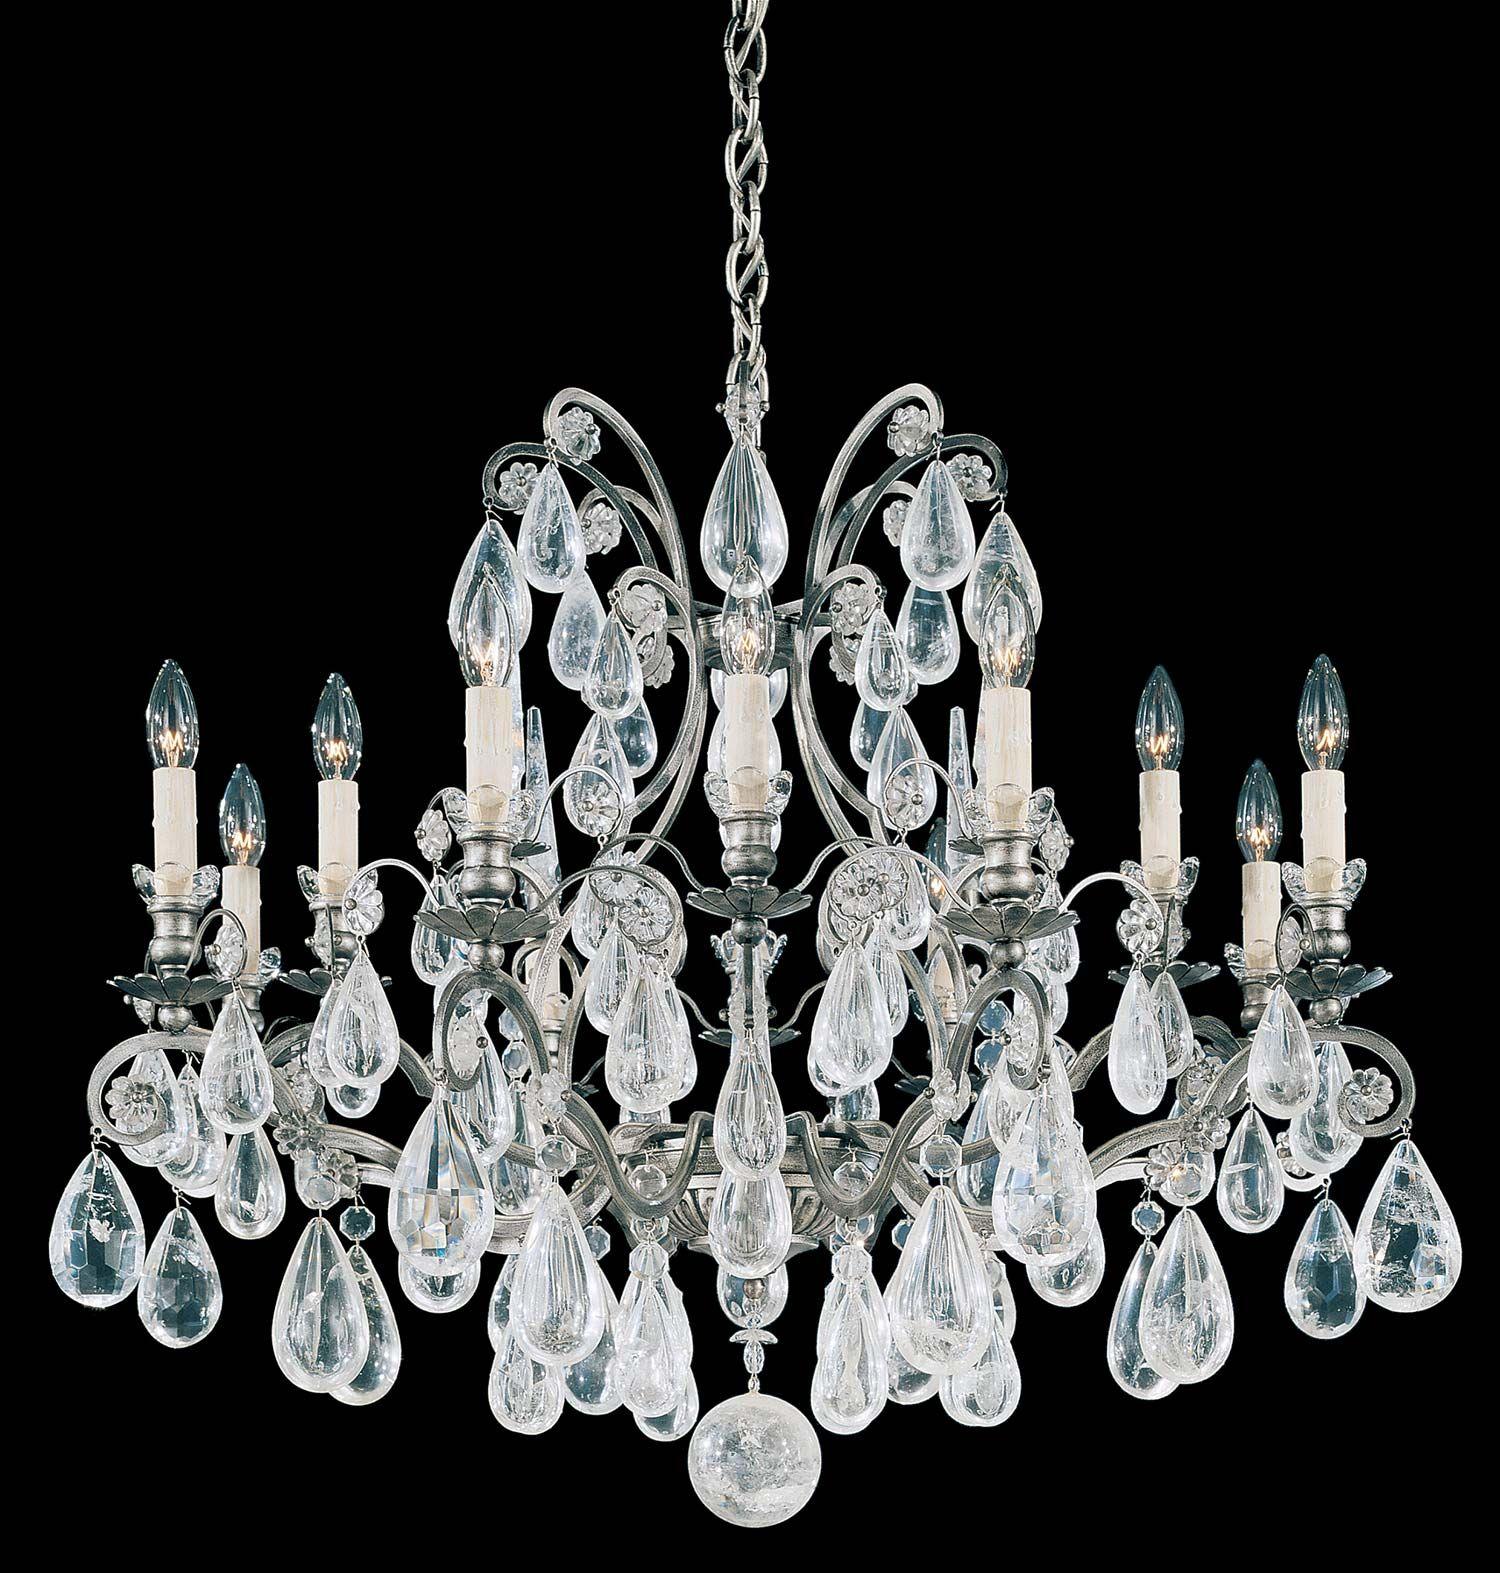 Schonbek 2490 versailles rock crystal collection chandelier schonbek 2490 versailles rock crystal collection chandelier crystal traditional crystal aloadofball Image collections